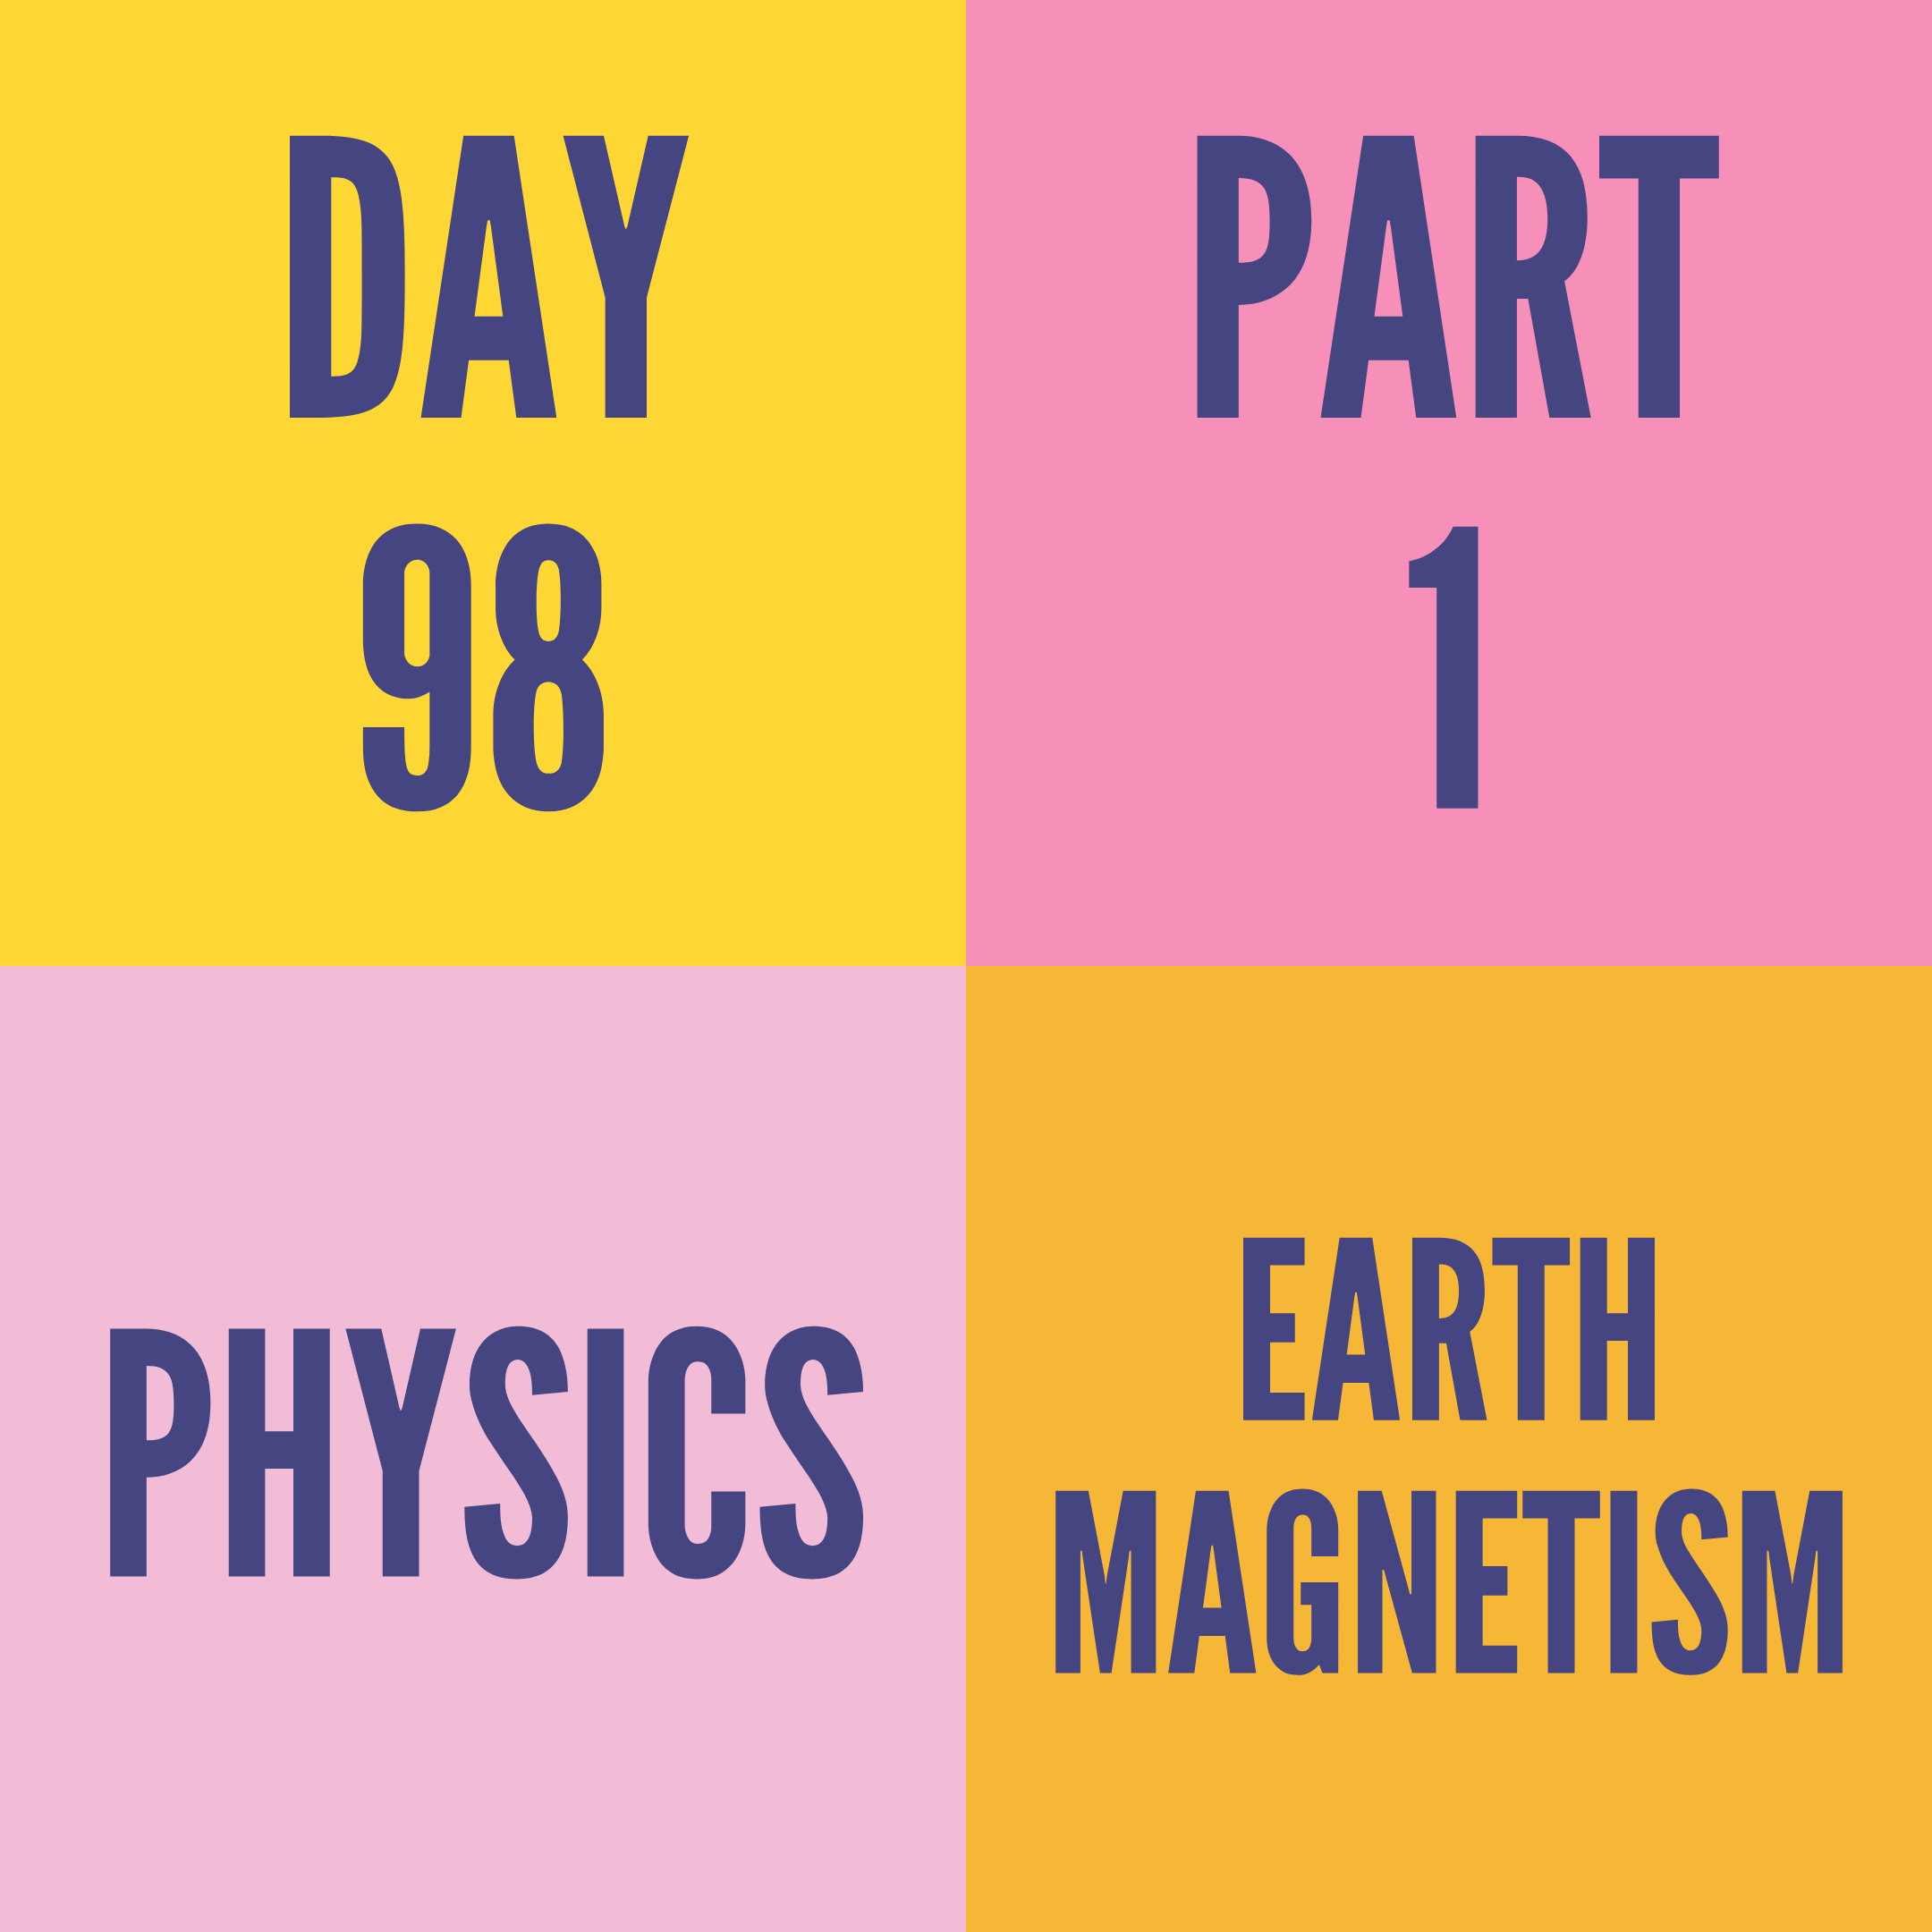 DAY-98 PART-1 EARTH MAGNETISM